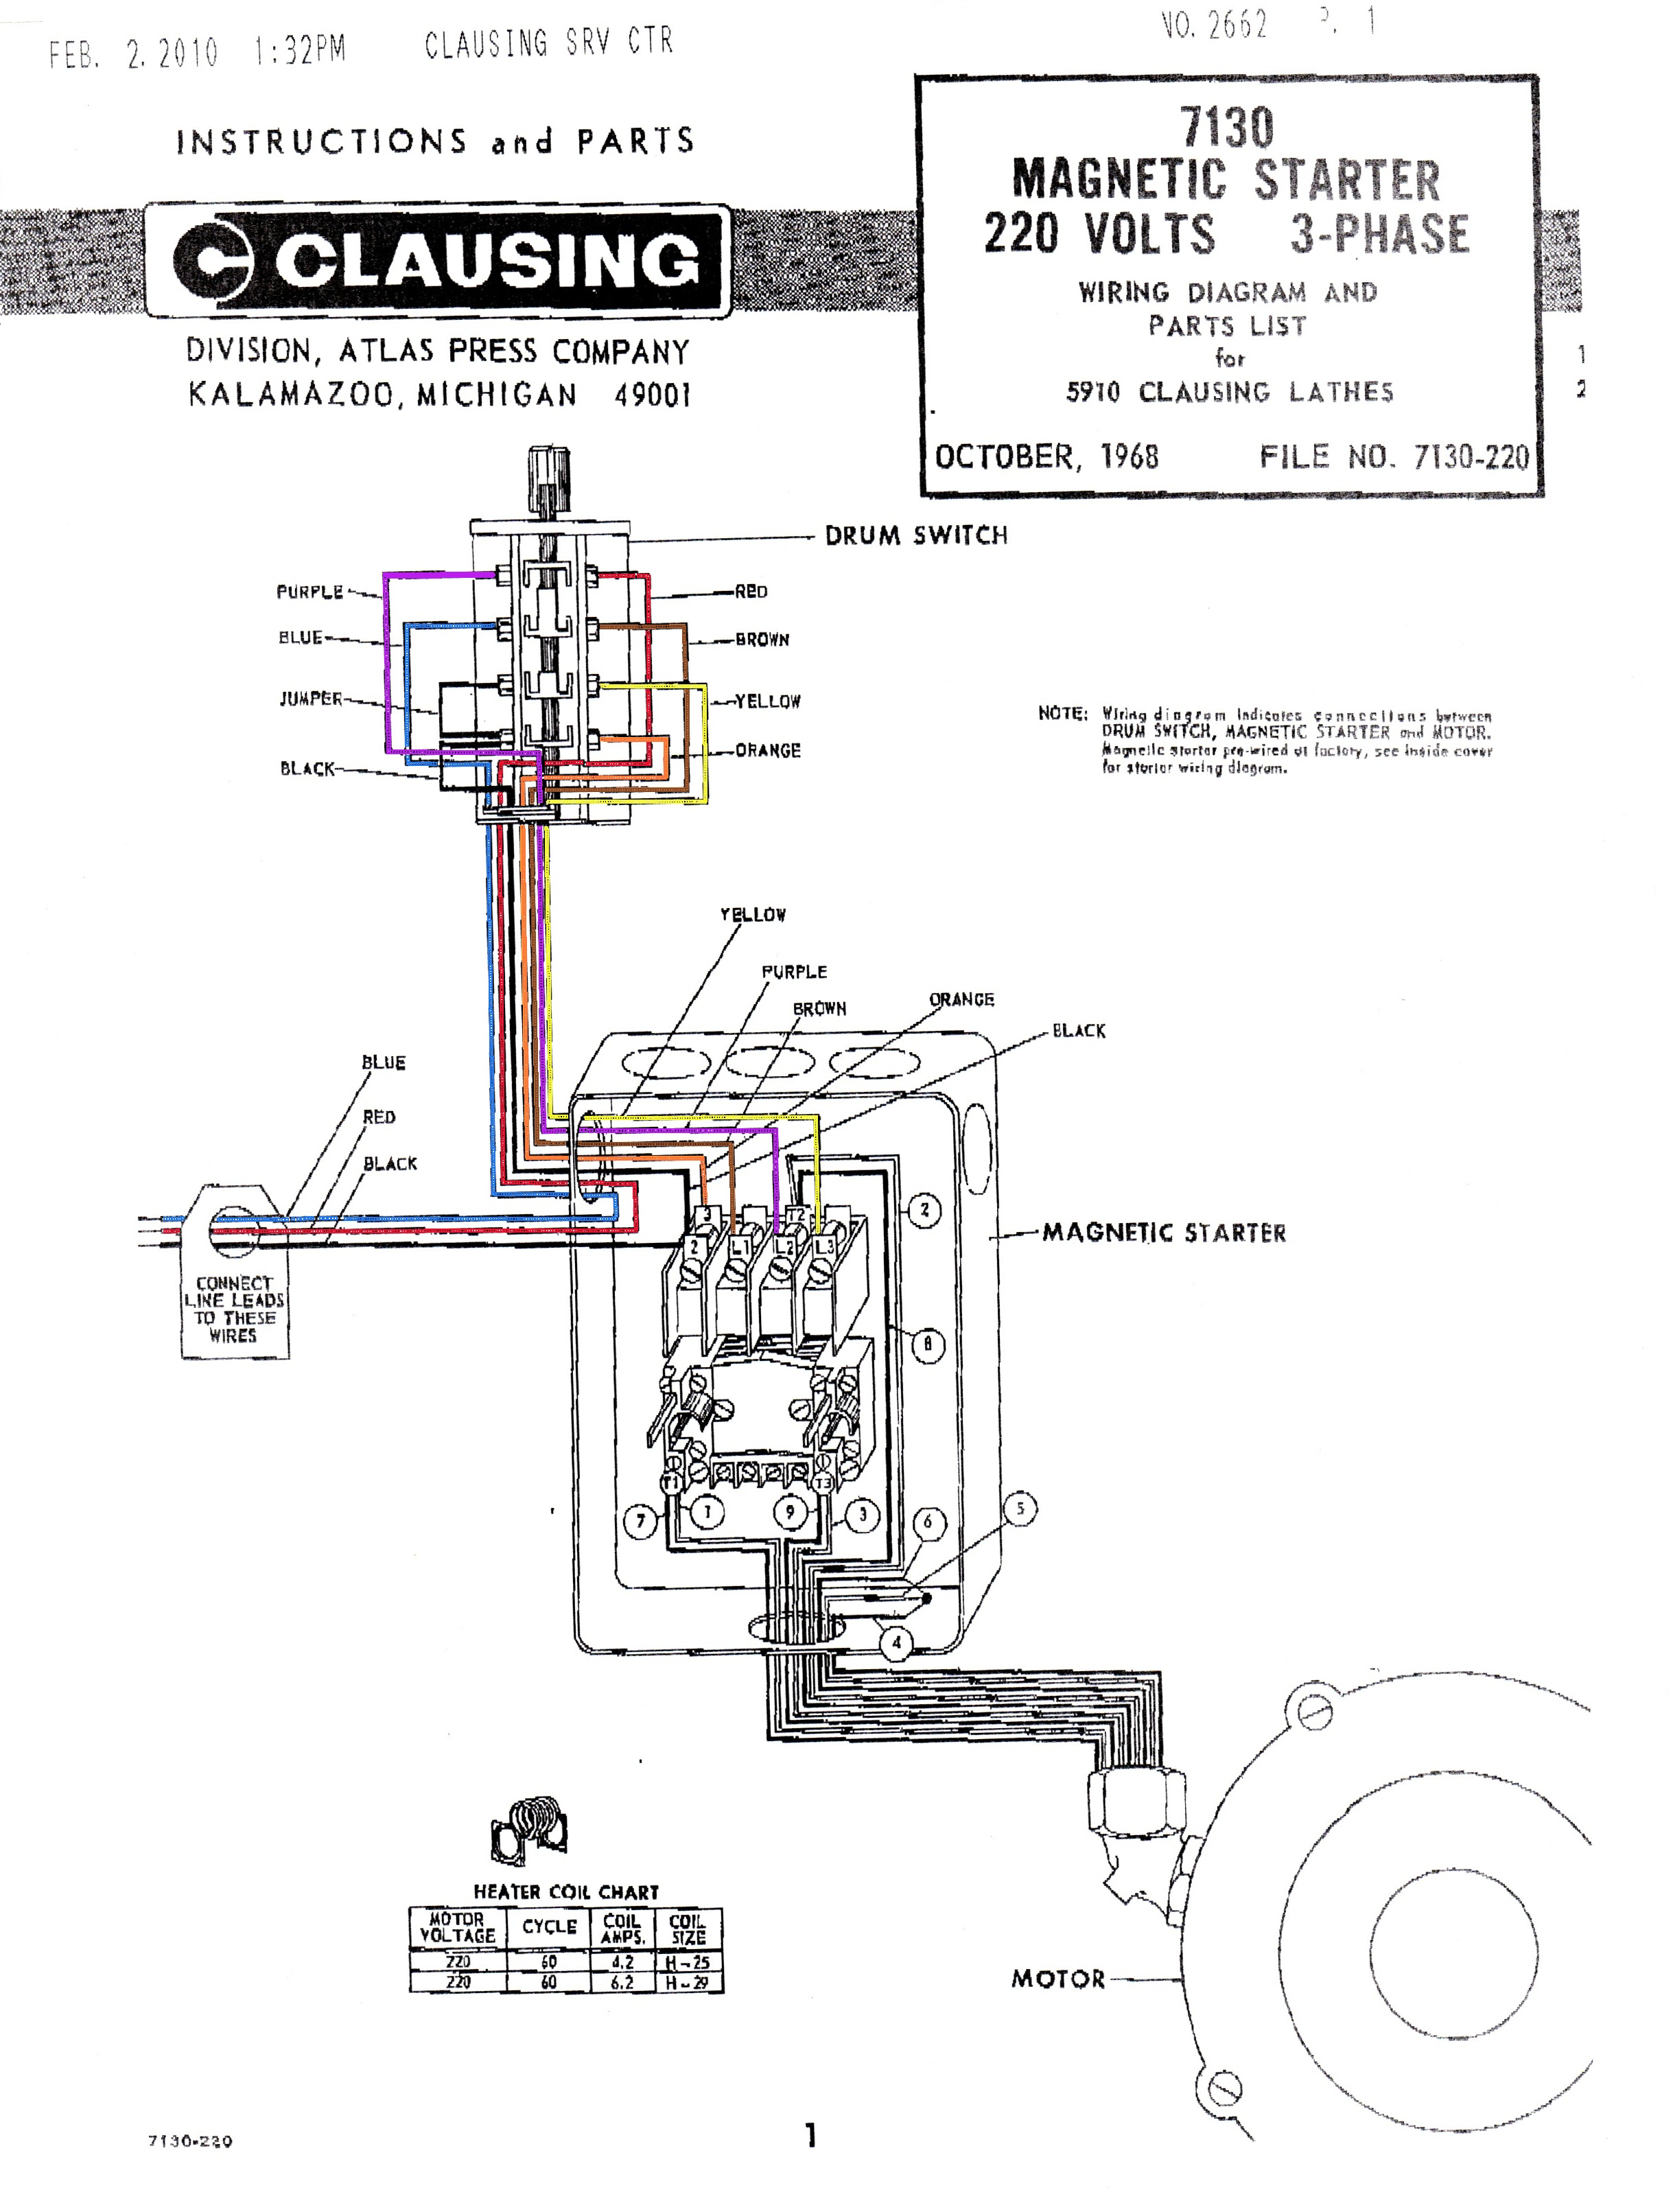 7130 Magnetic Starter Wiring Diagram Color starter wiring diagrams mag wiring diagrams instruction starter wiring diagram at virtualis.co